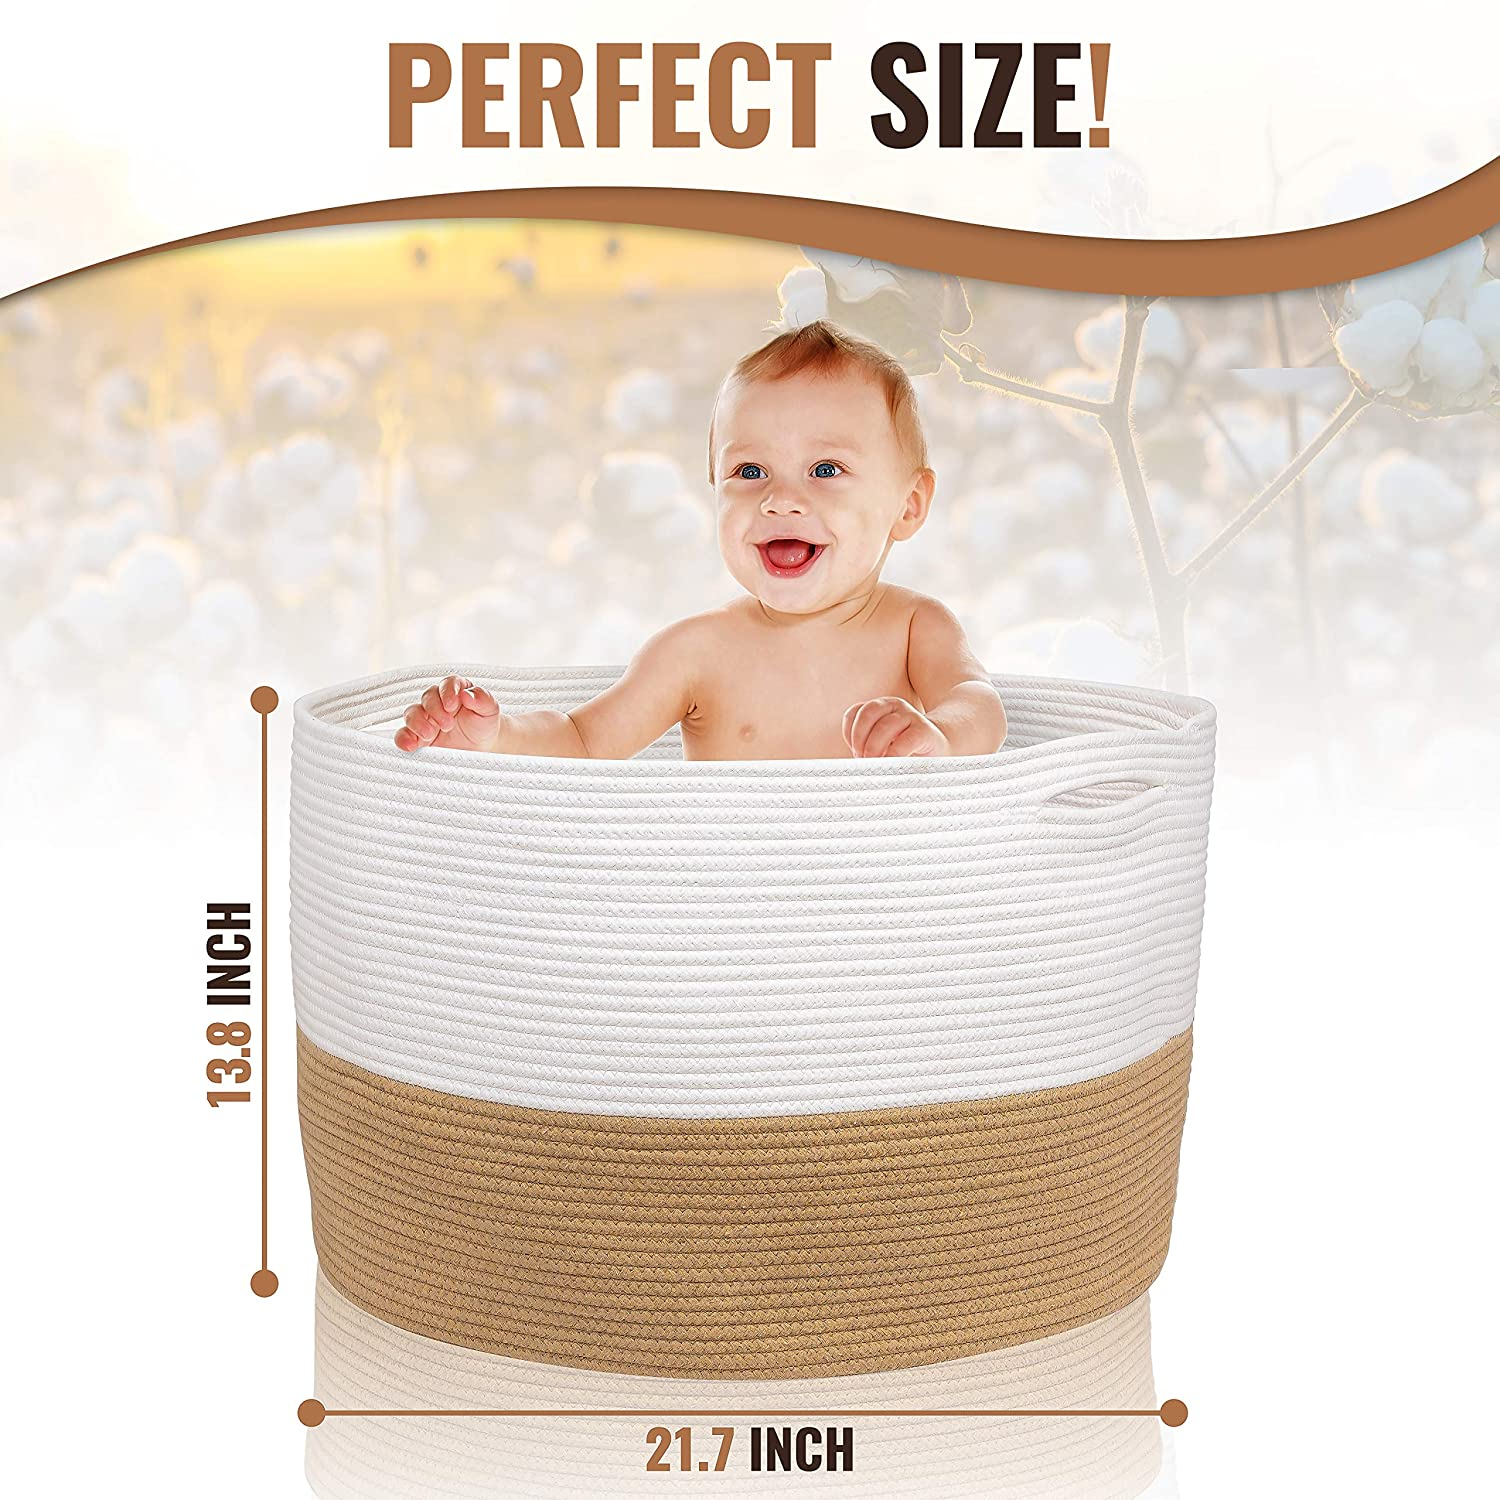 Extra Large Laundry Basket-White and Beige Blankets HOMYAM XXL Cotton Rope Basket 22/″x14/″ Nursery Toy basket Large Blanket Basket with Strong Invisible Handles Woven Storage Basket for Clothes